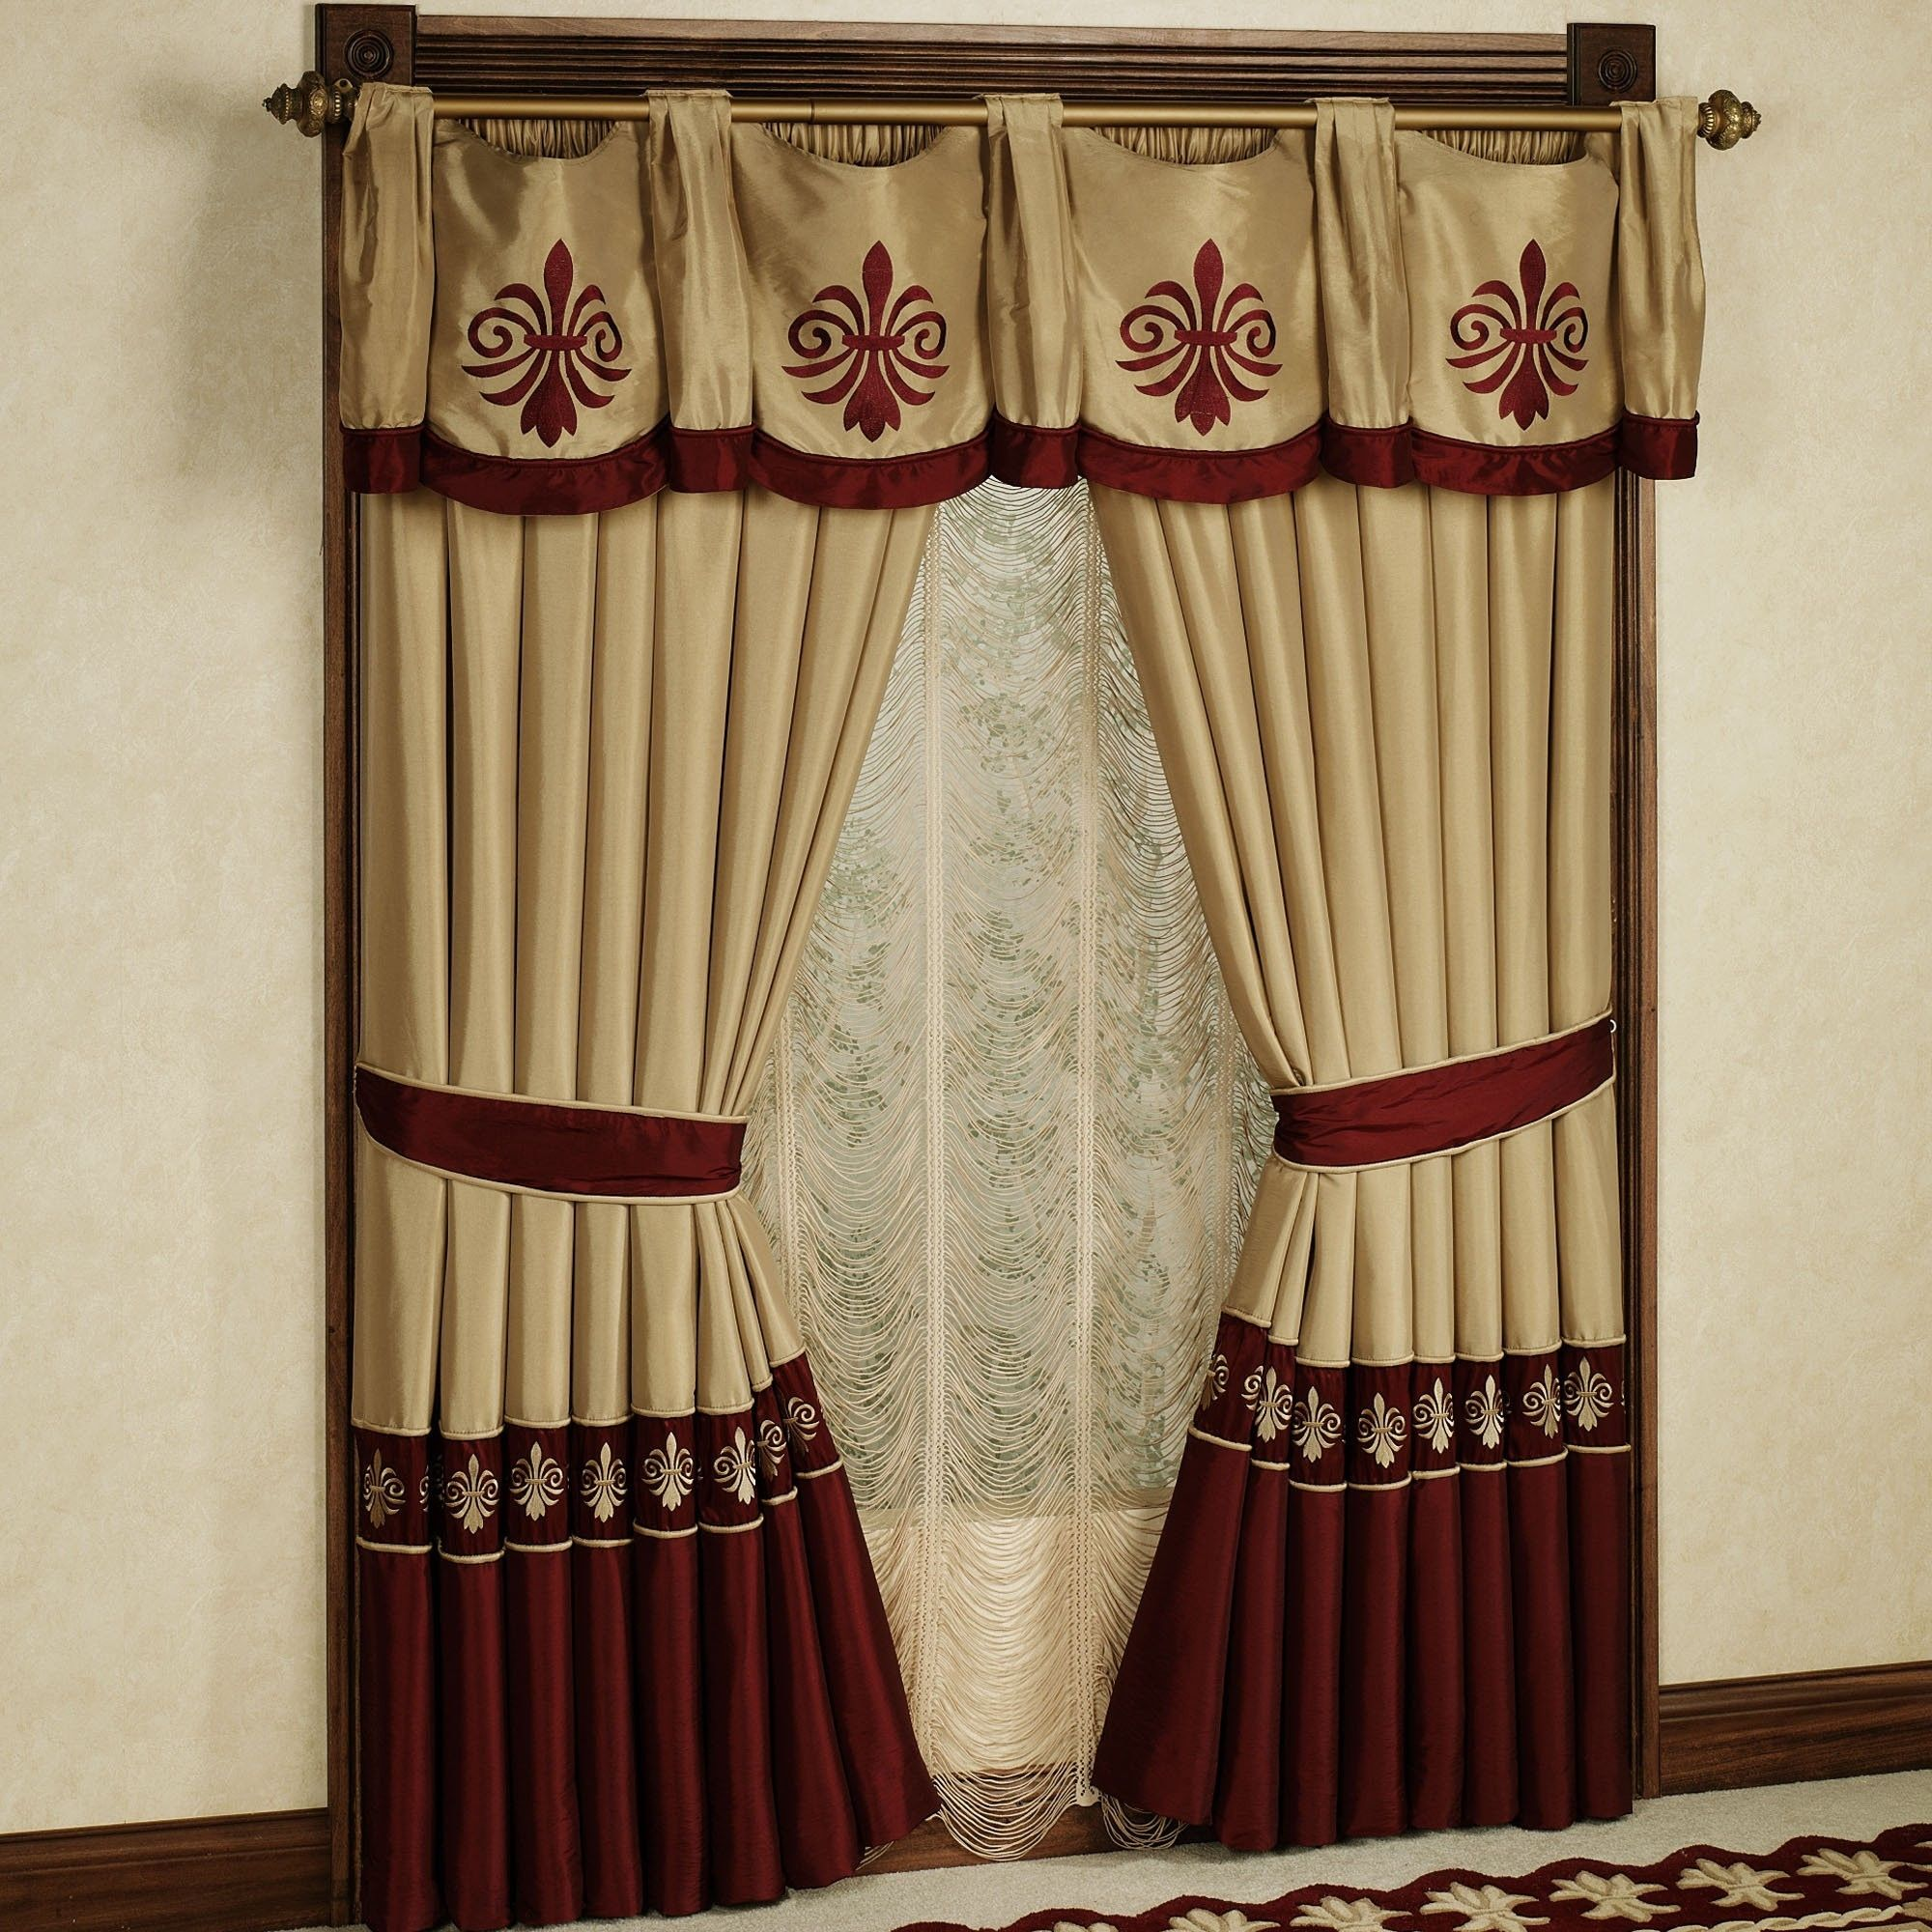 Window curtains designs pictures realtagfo pinterest